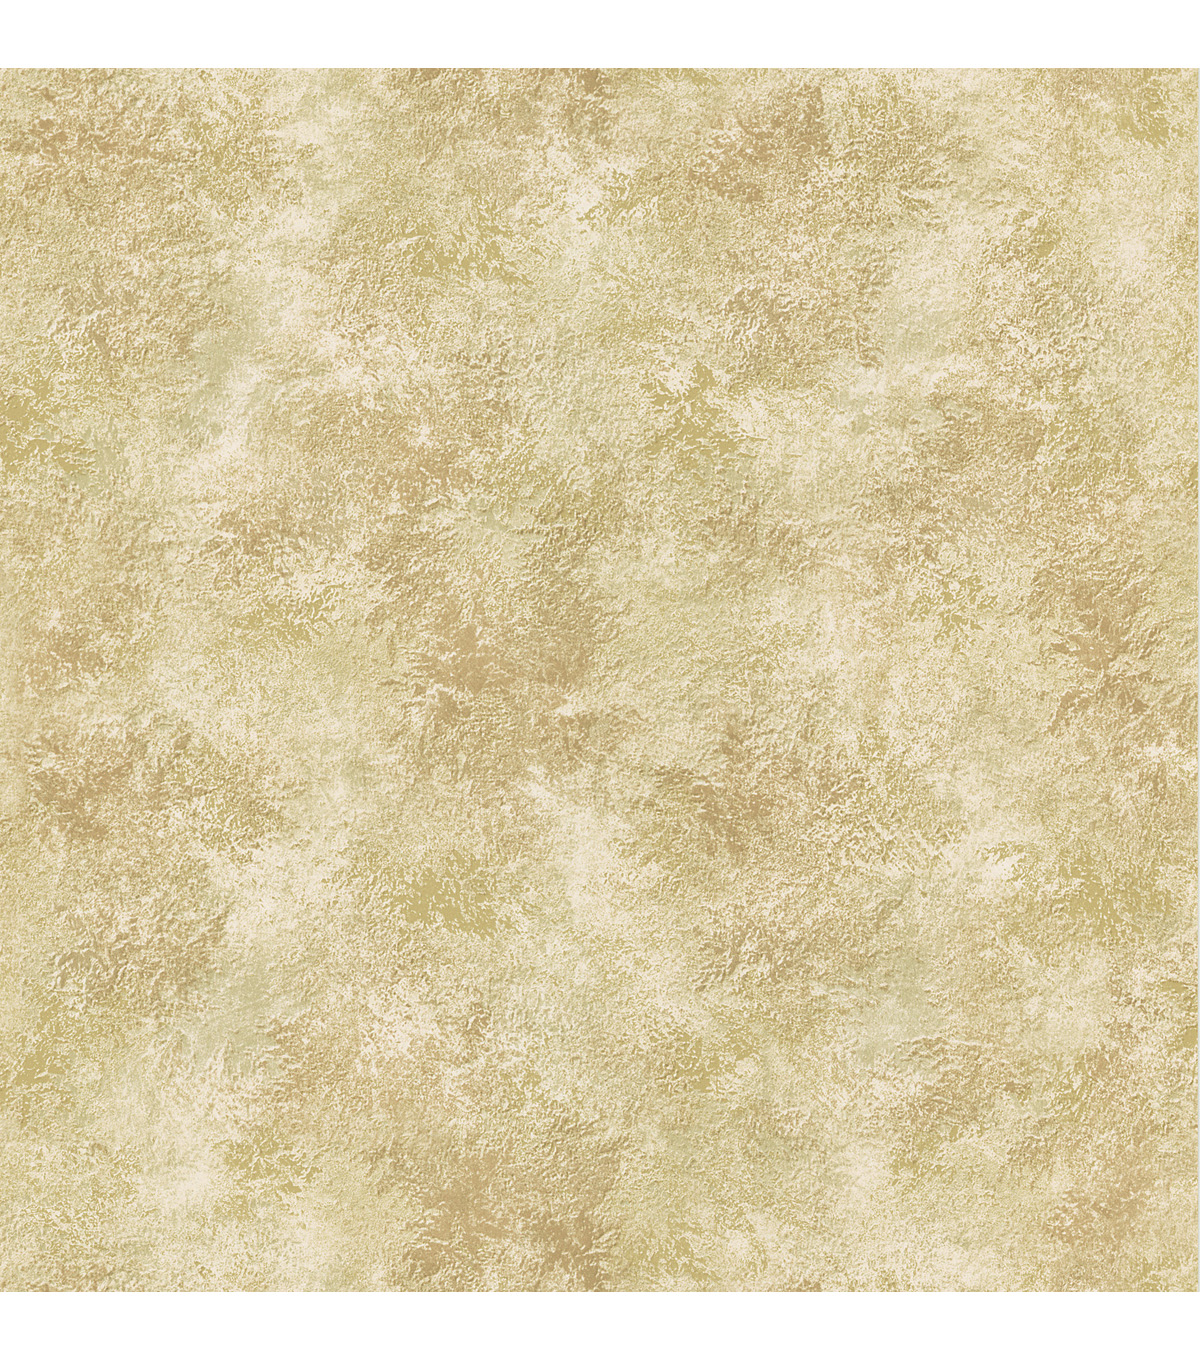 Ruggle Beige Plaster Texture Wallpaper